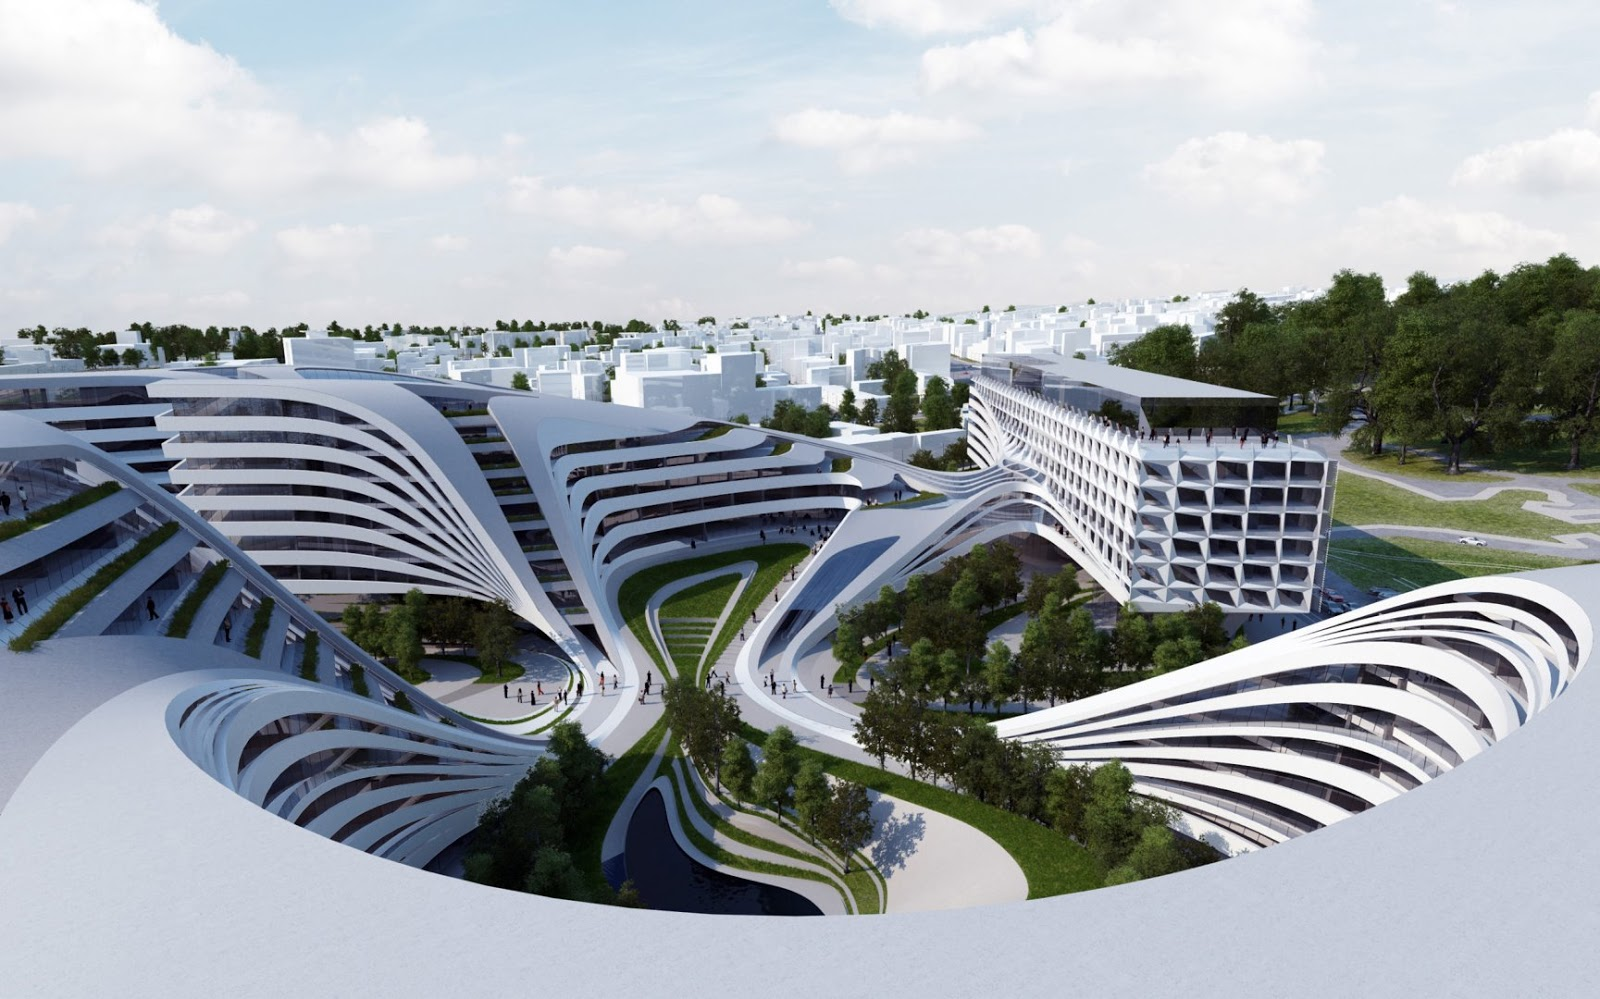 Modern Architecture world of architecture: zaha hadid architects doing their magic